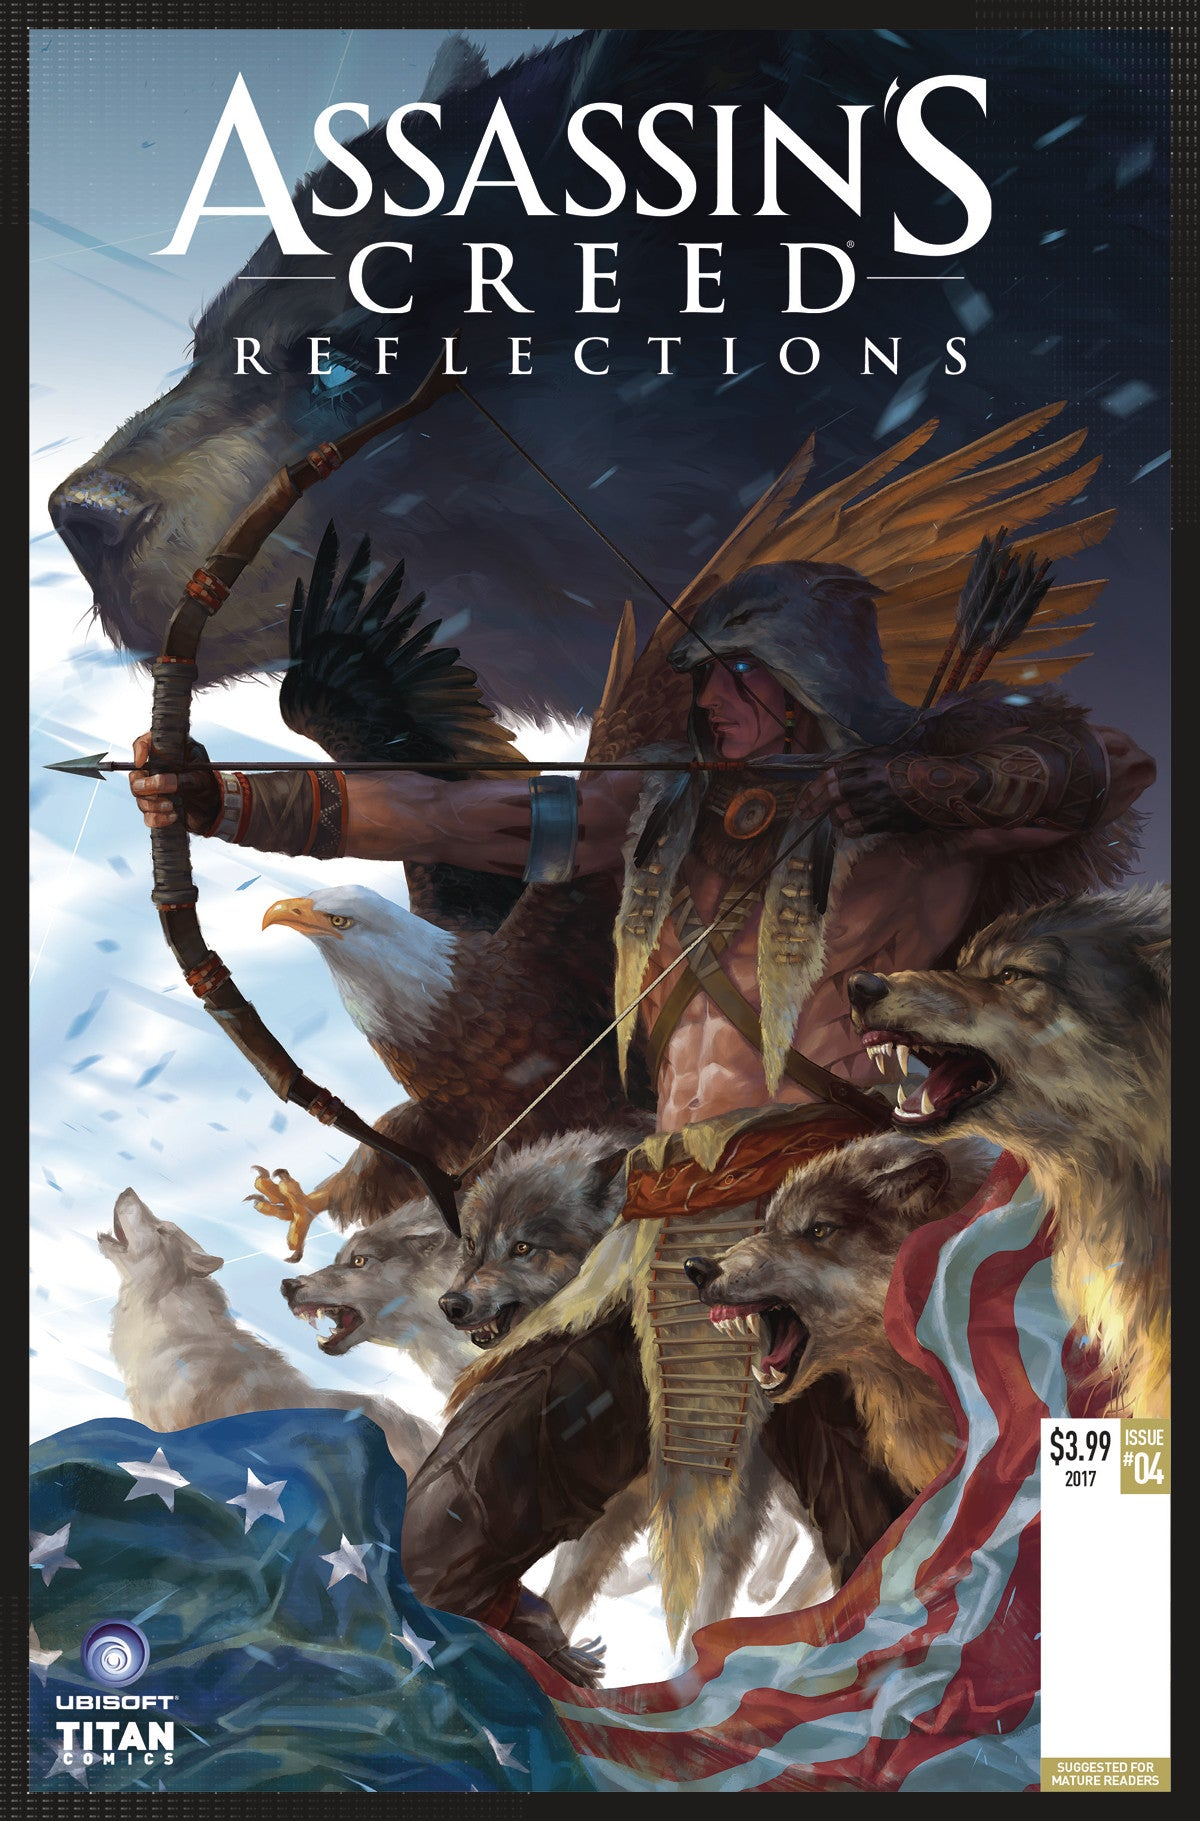 ASSASSINS CREED REFLECTIONS #4 (OF 4) CVR A SUNSETAGAIN